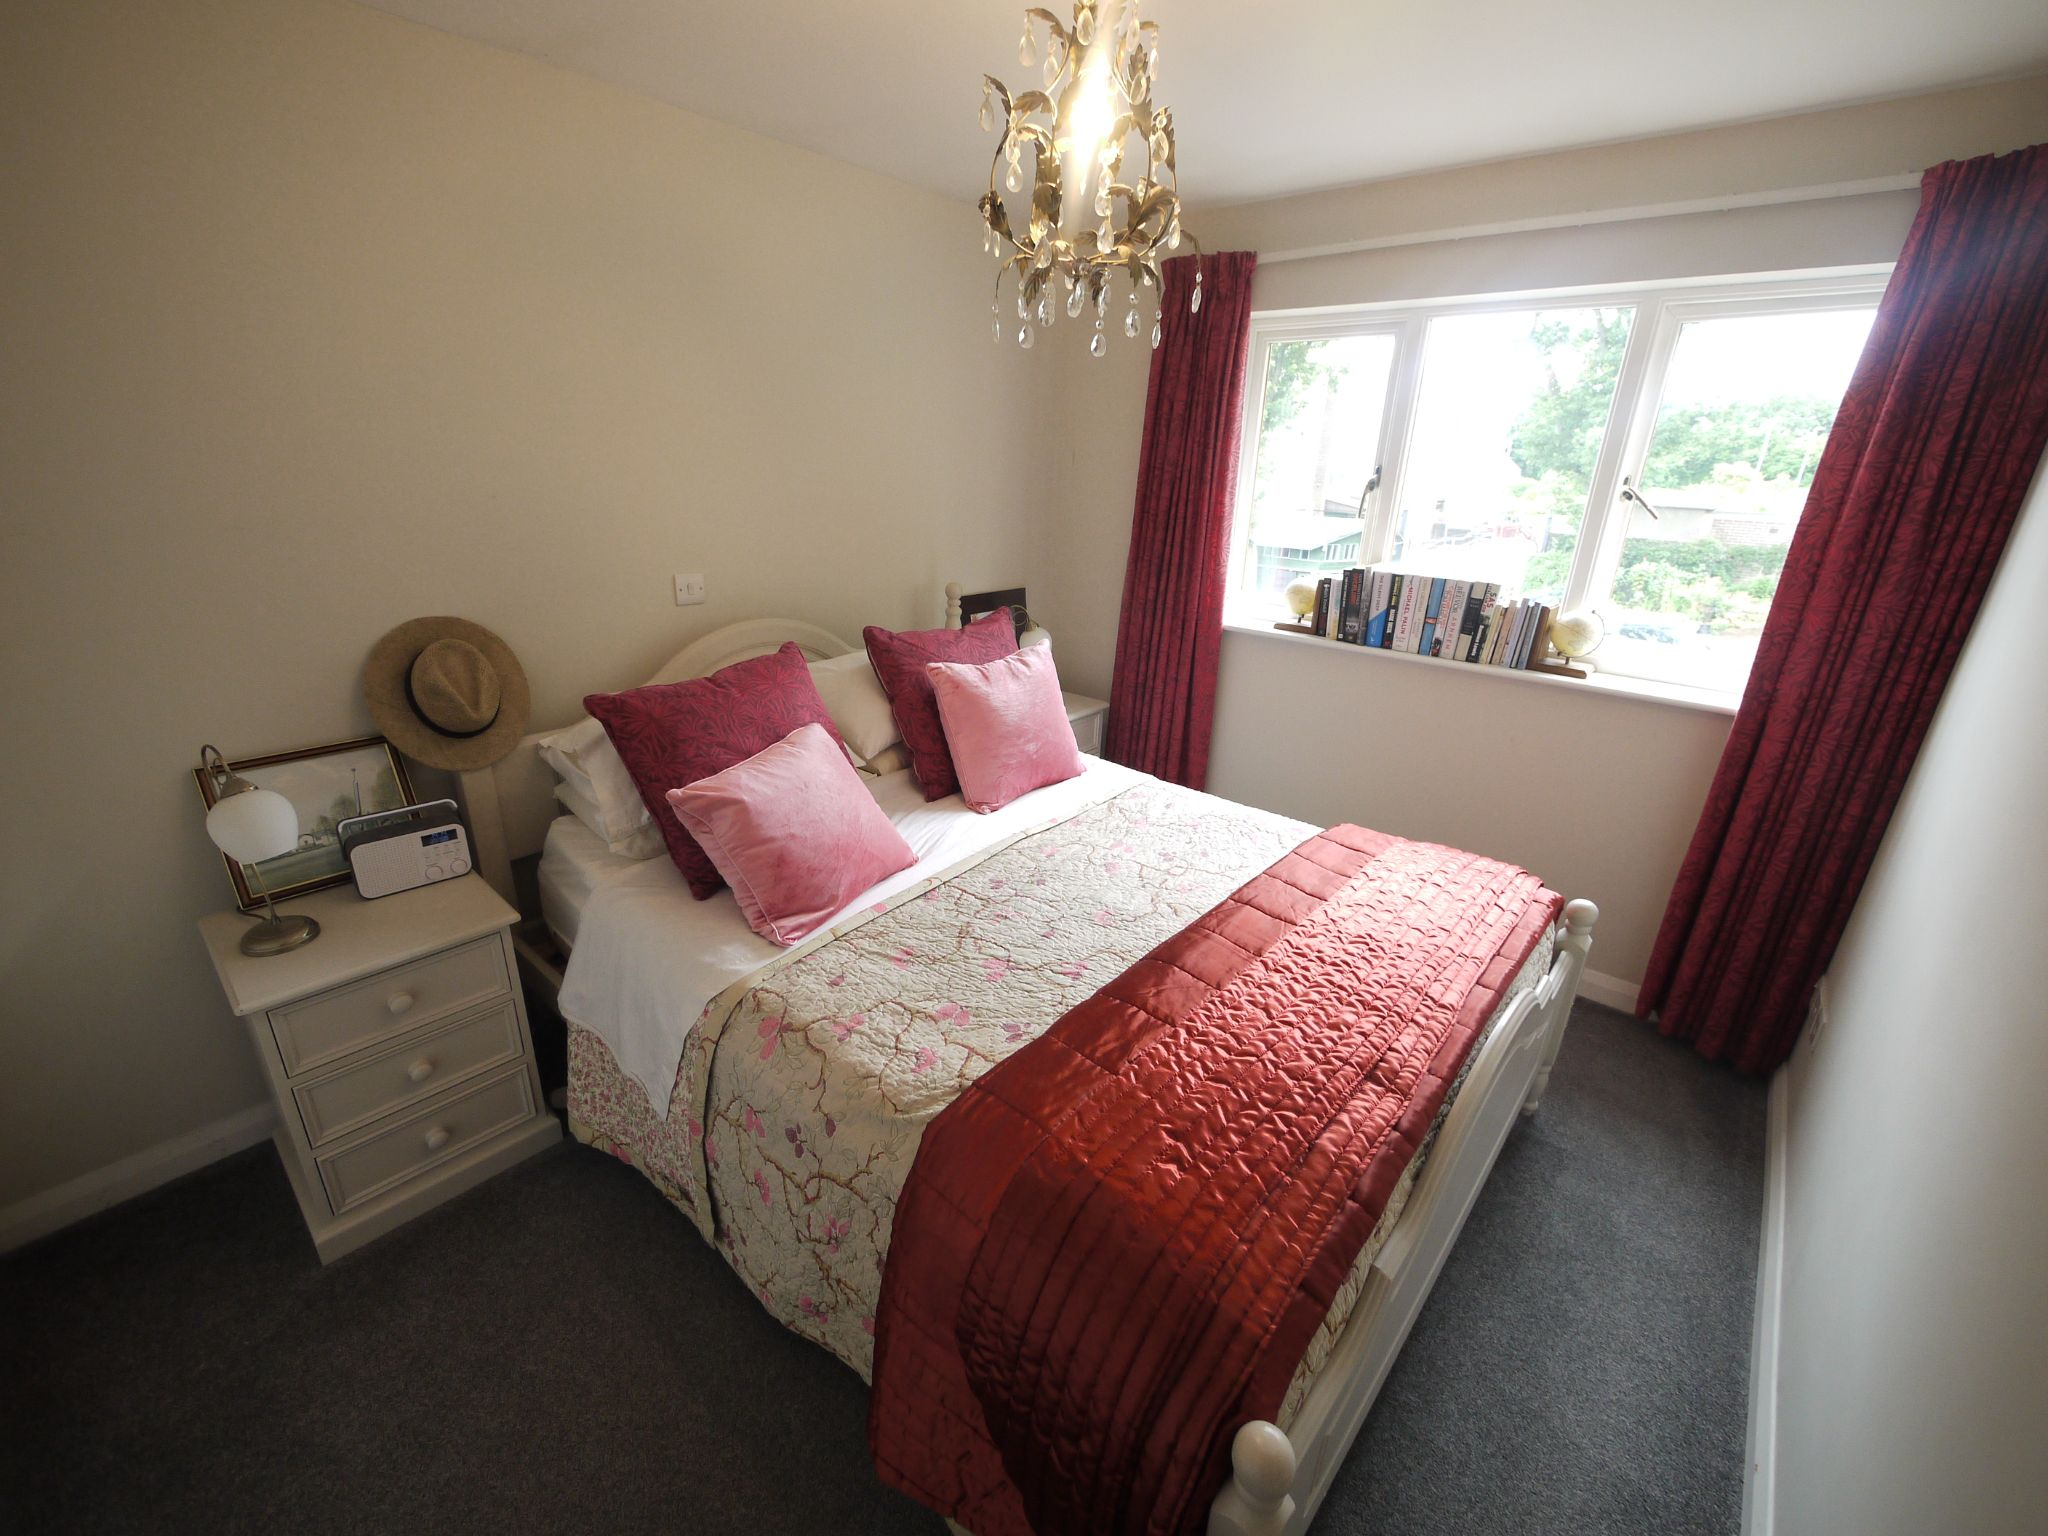 4 bedroom detached house For Sale in Brighouse - Bedroom 3.